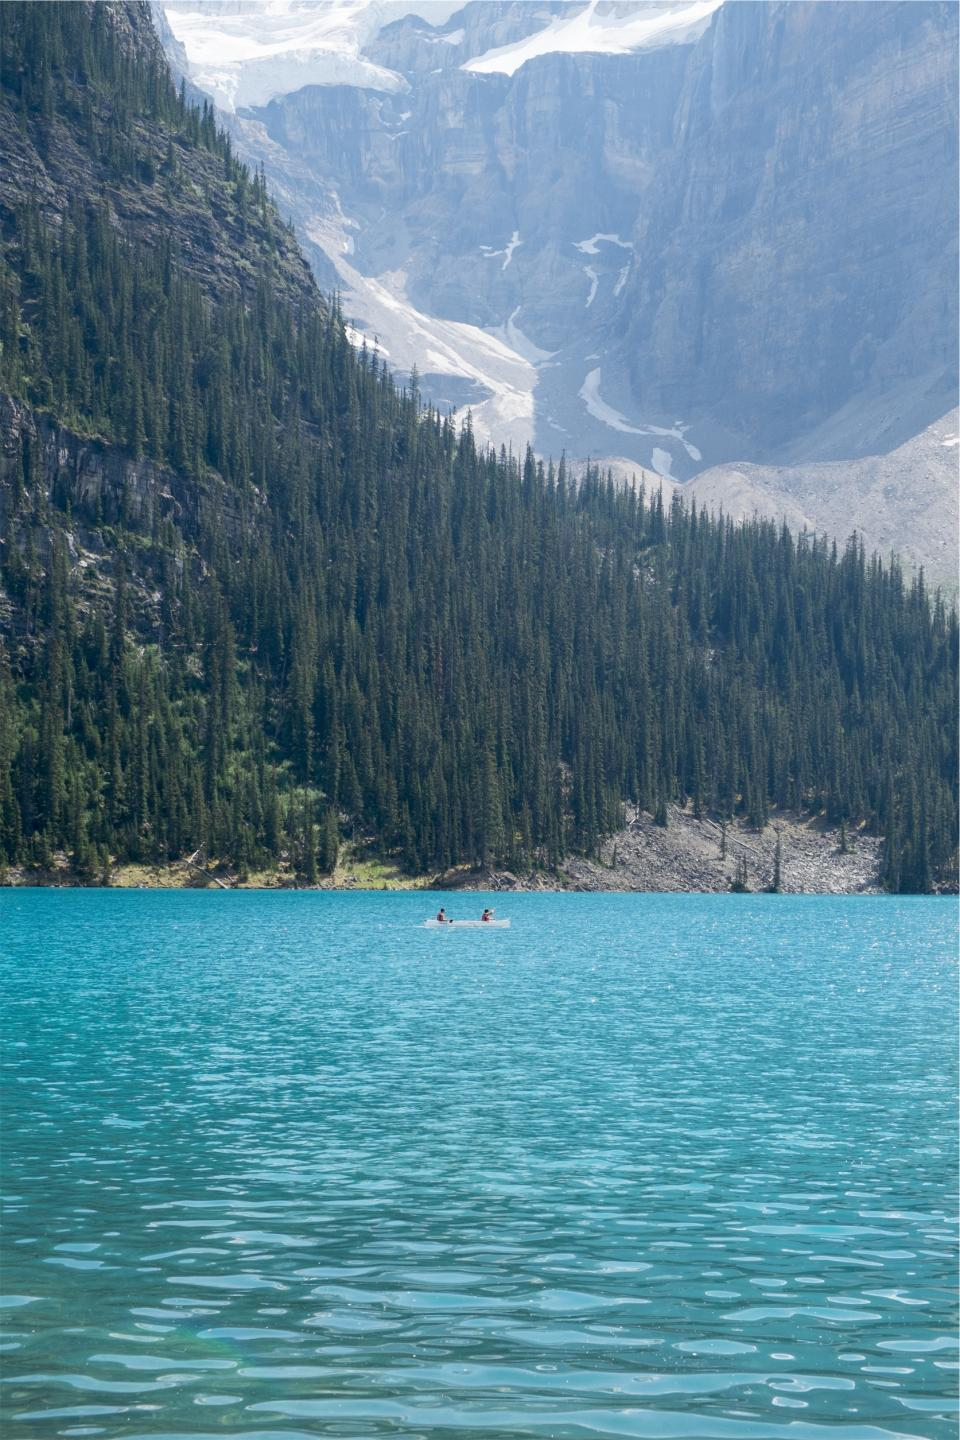 water trees nature mountains landscape lake hills forest cliffs blue